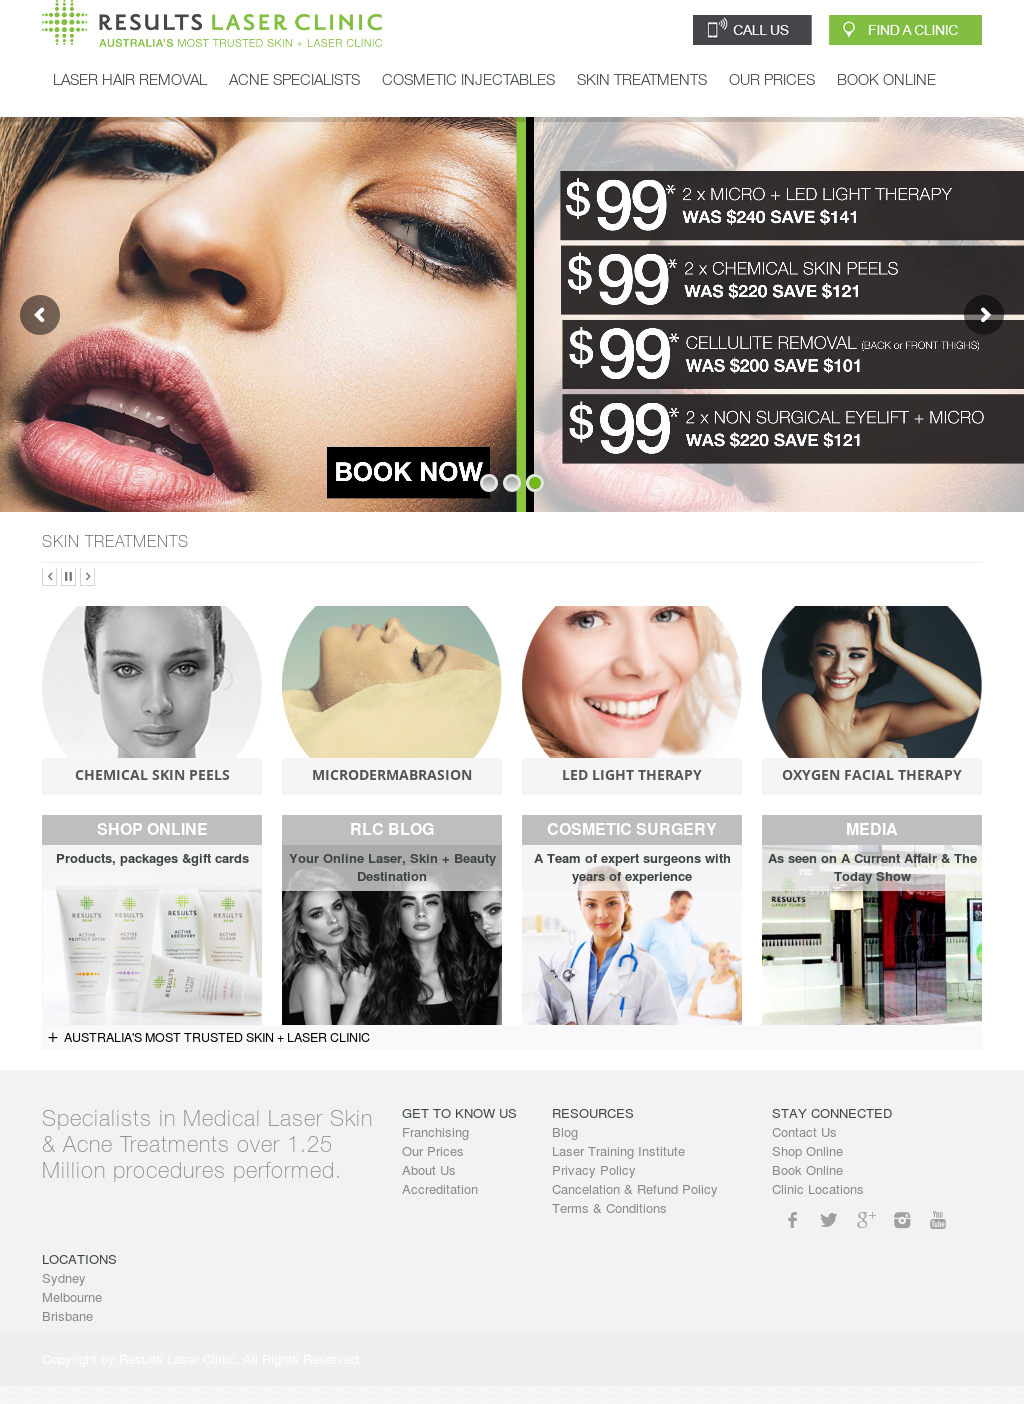 Results Laser Hair Removal Clinic Competitors, Revenue and